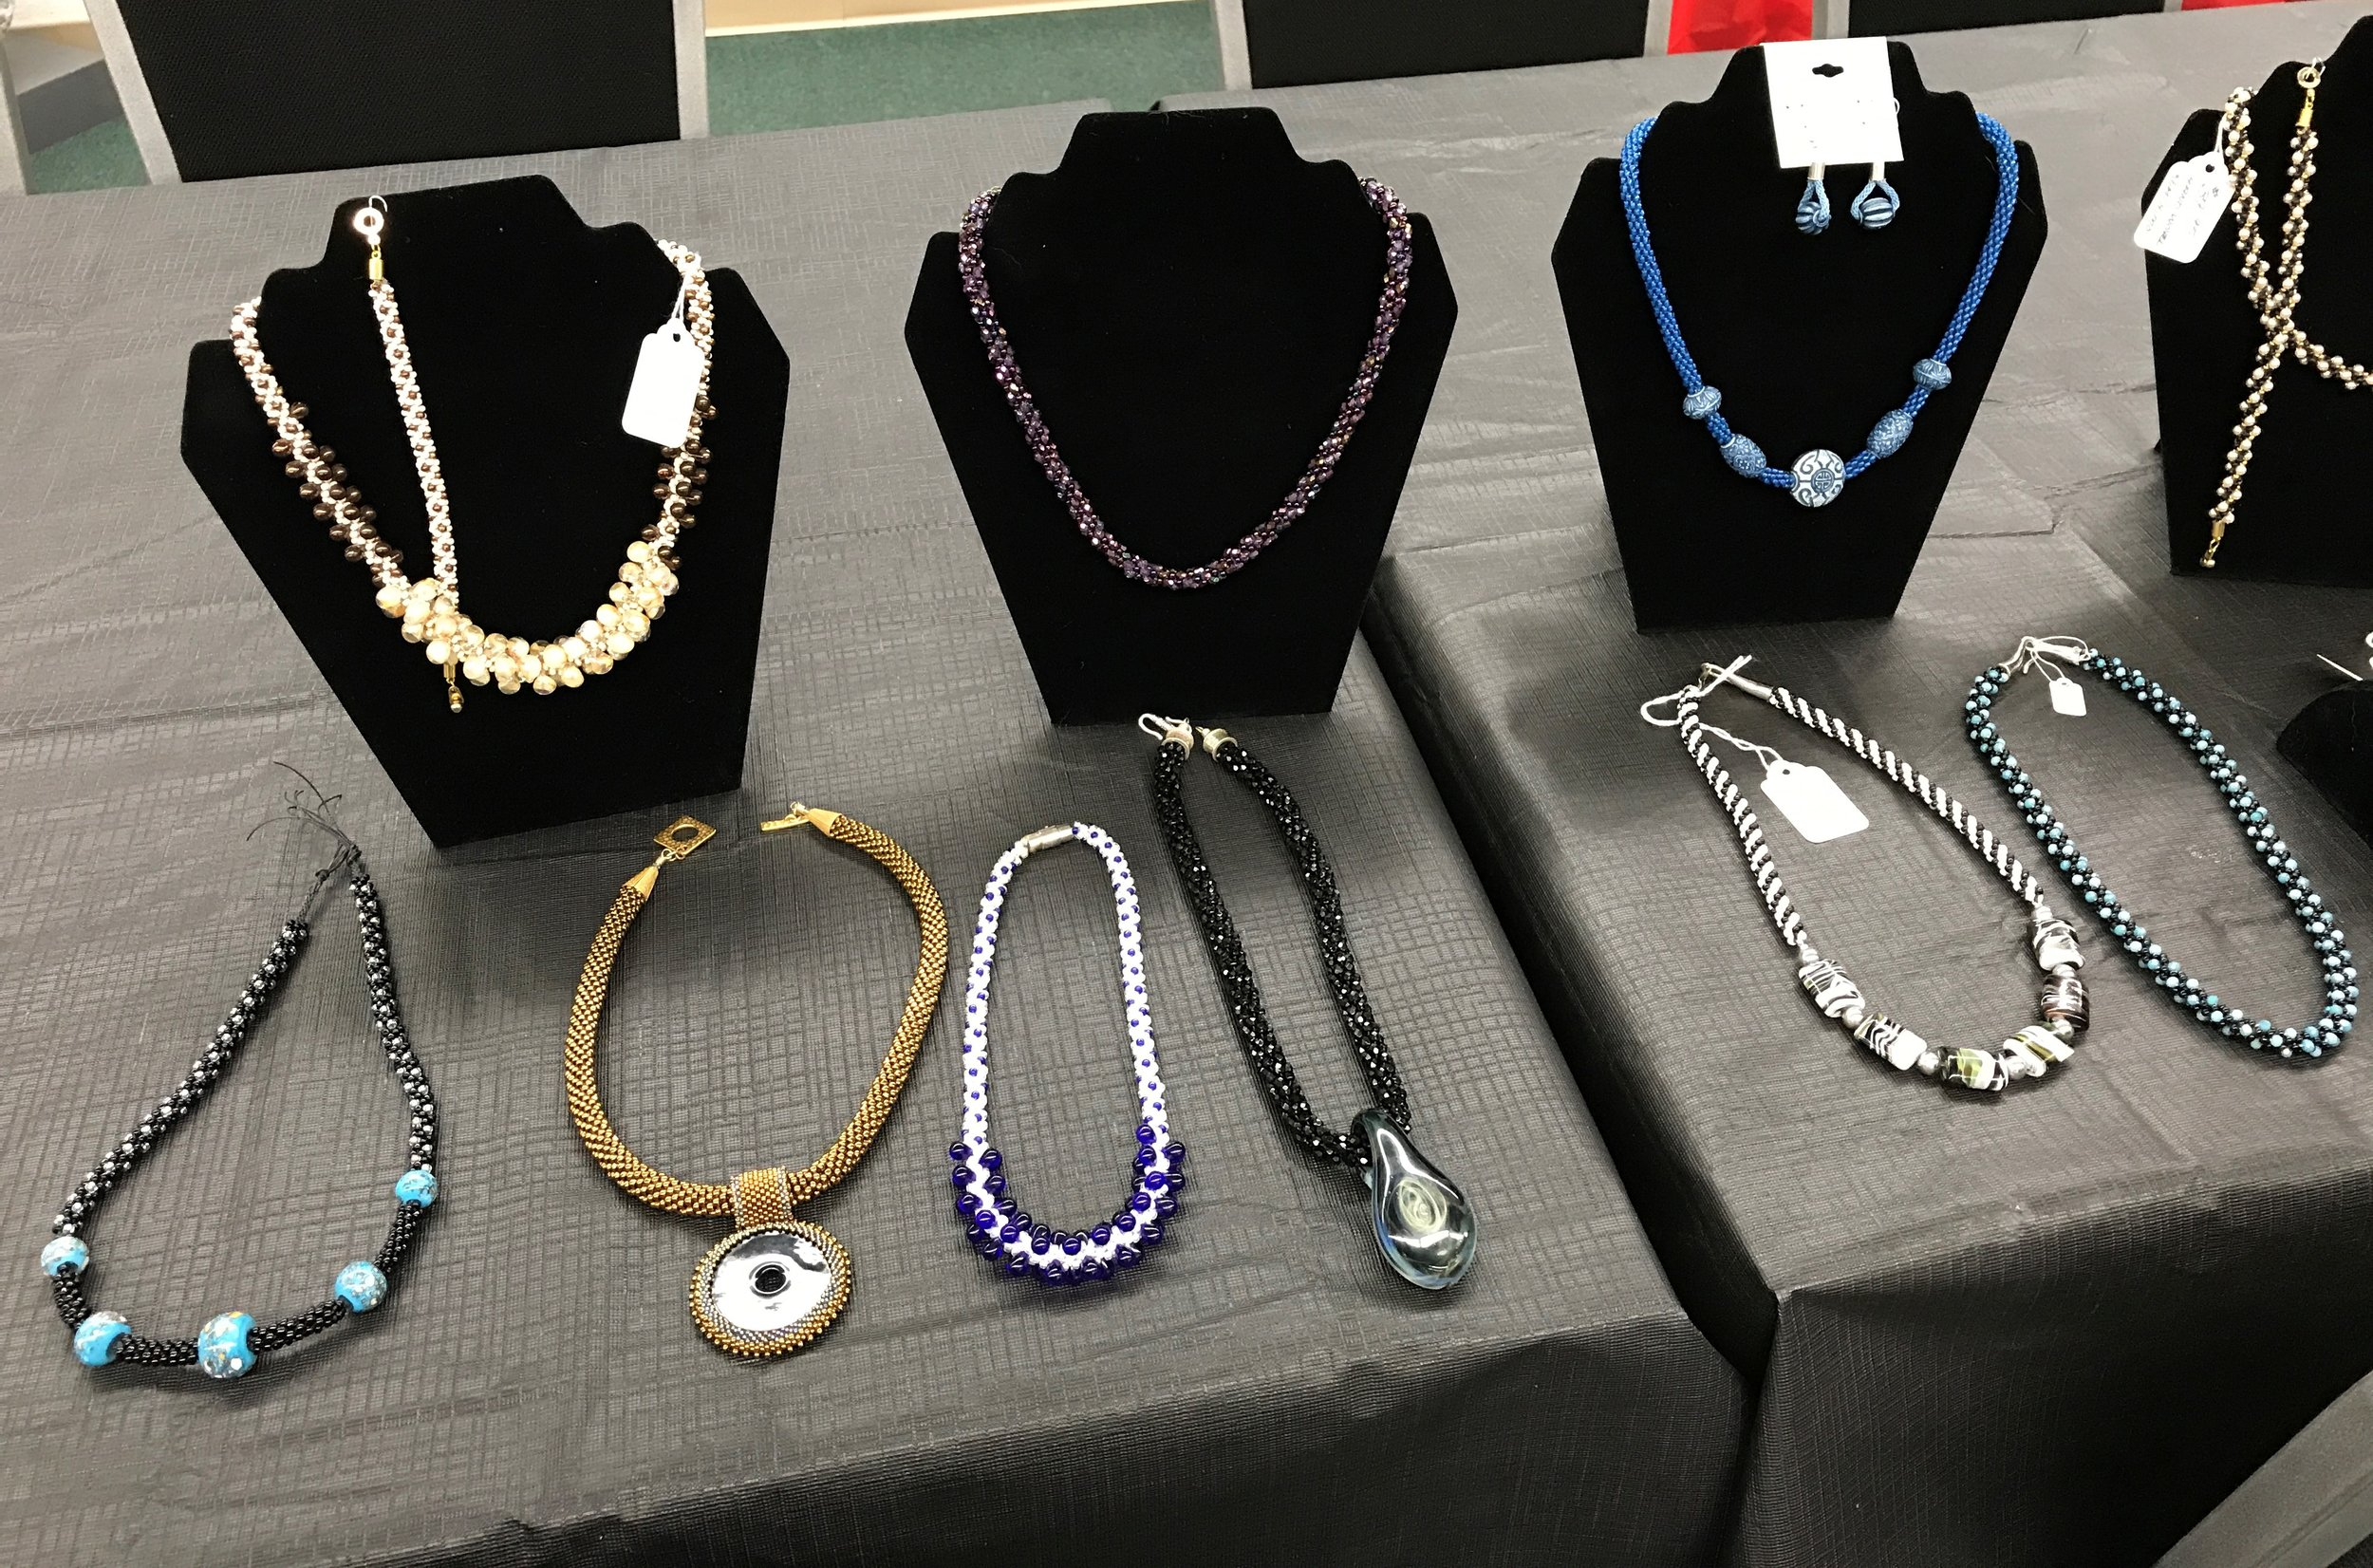 Some of the lovely pieces of jewlery